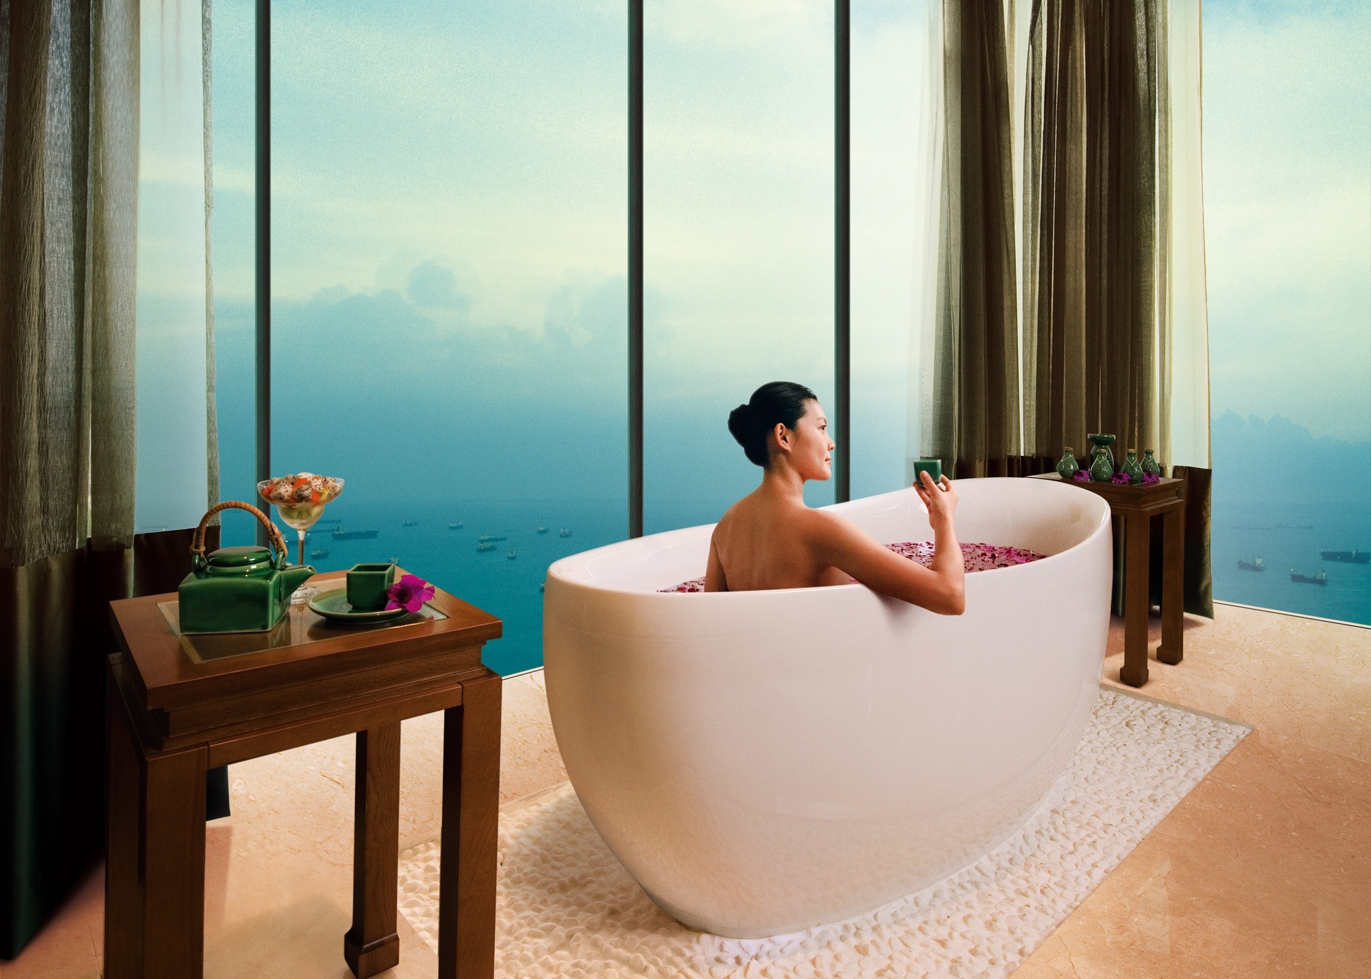 Banyan Tree Spa Marina Bay Sands - Haute Grandeur